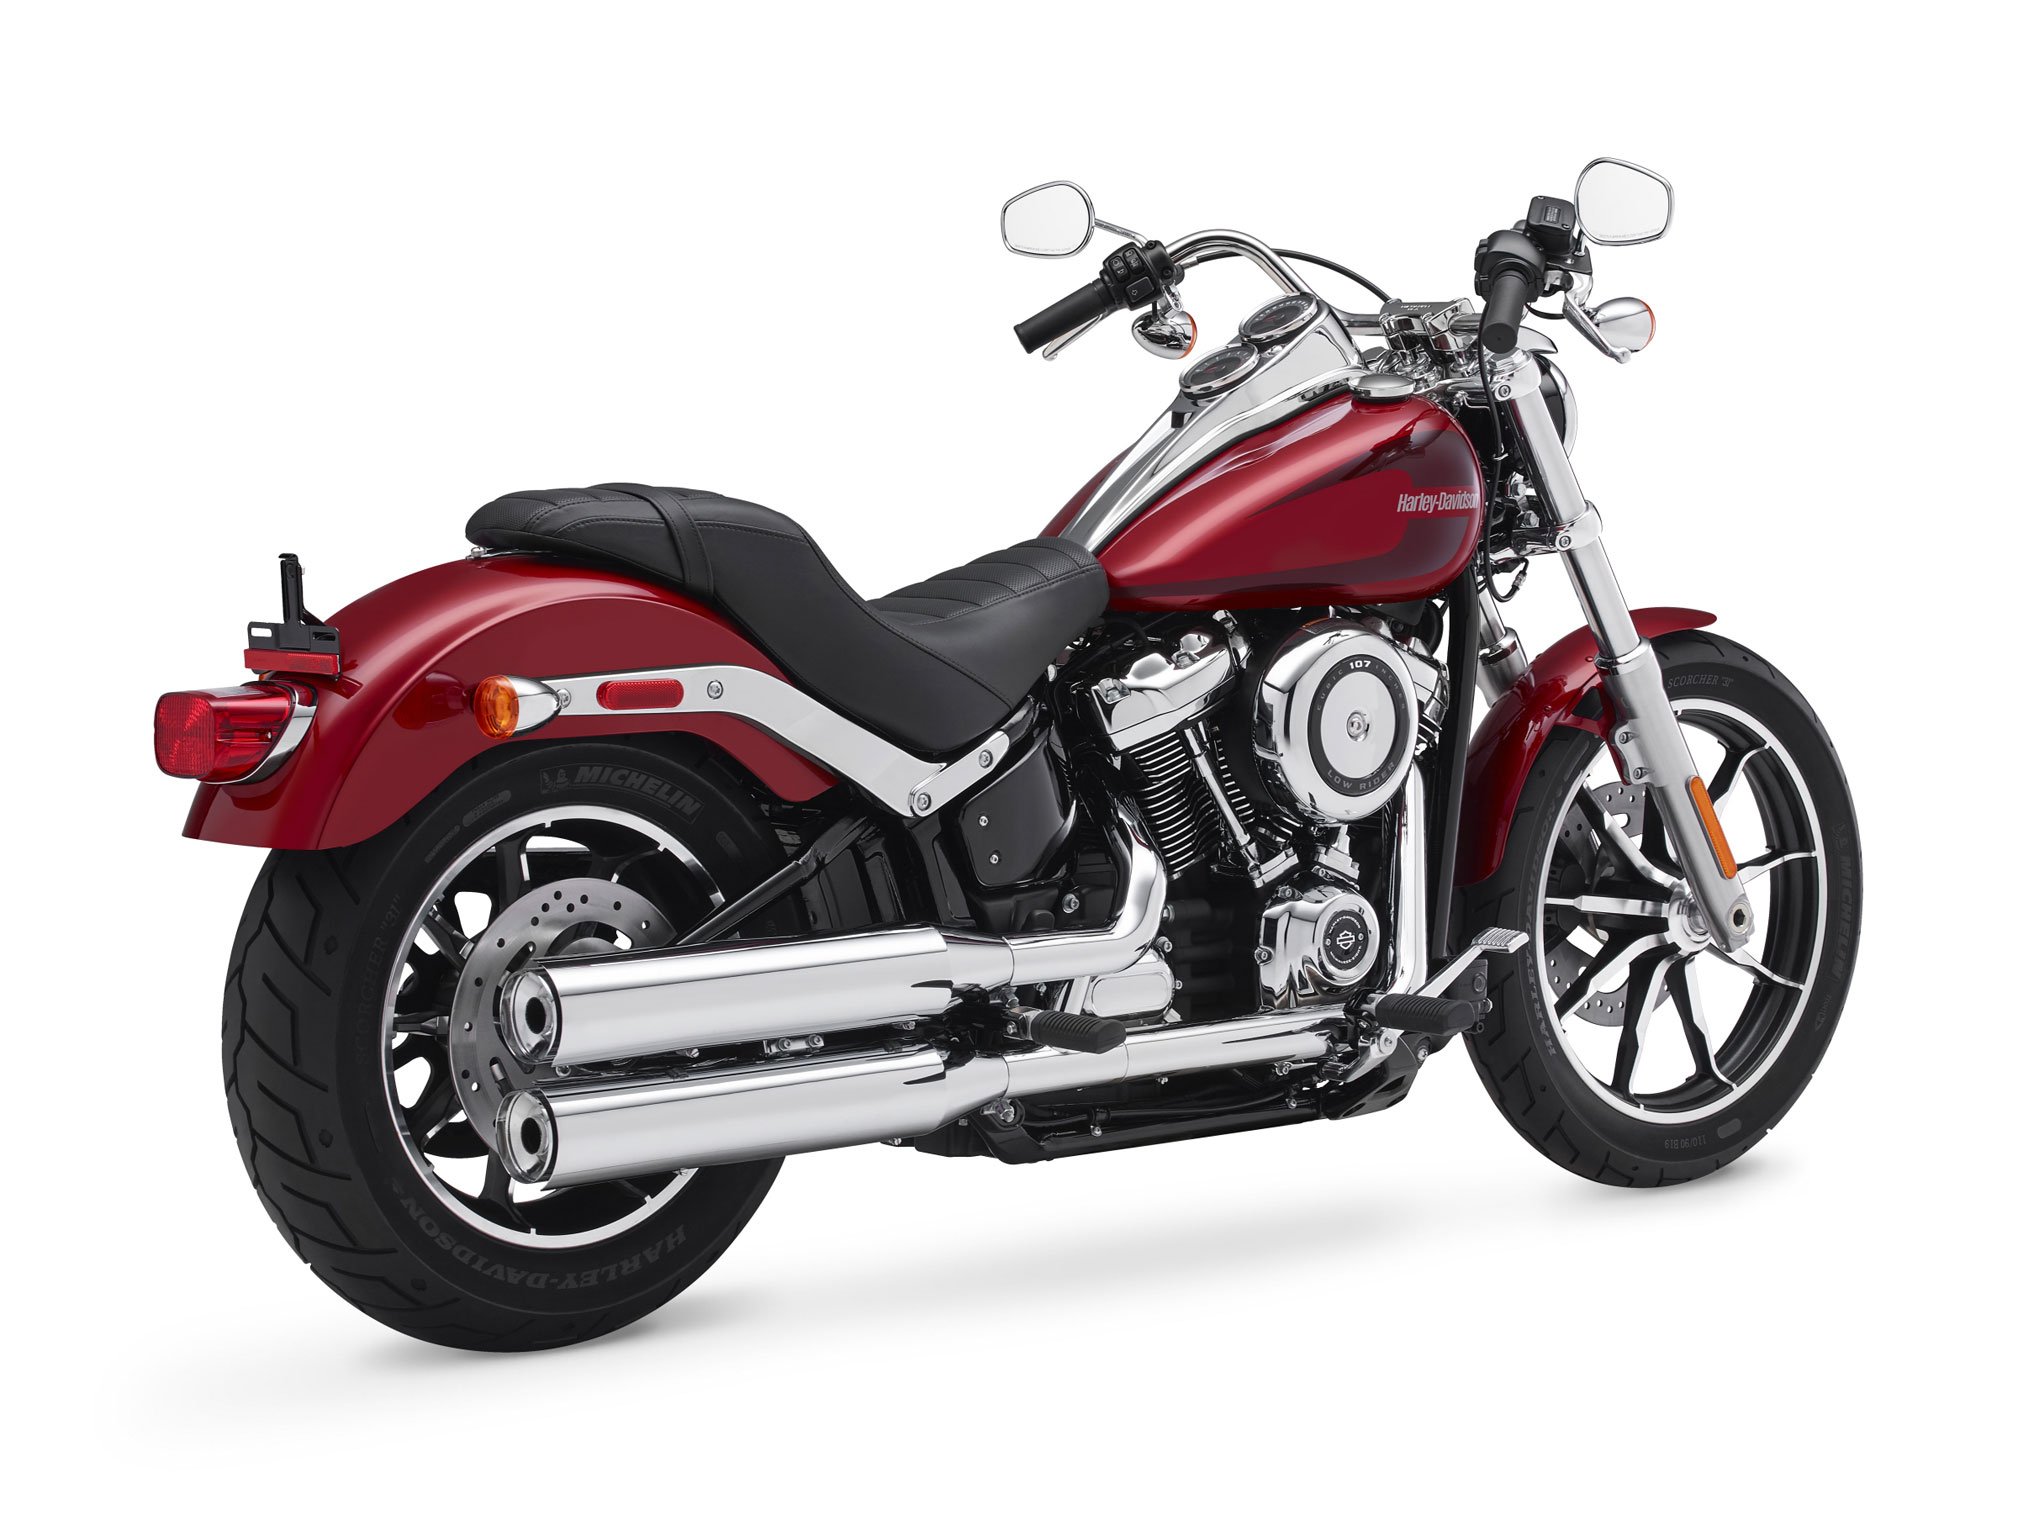 2018 Harley Davidson Low Rider Review